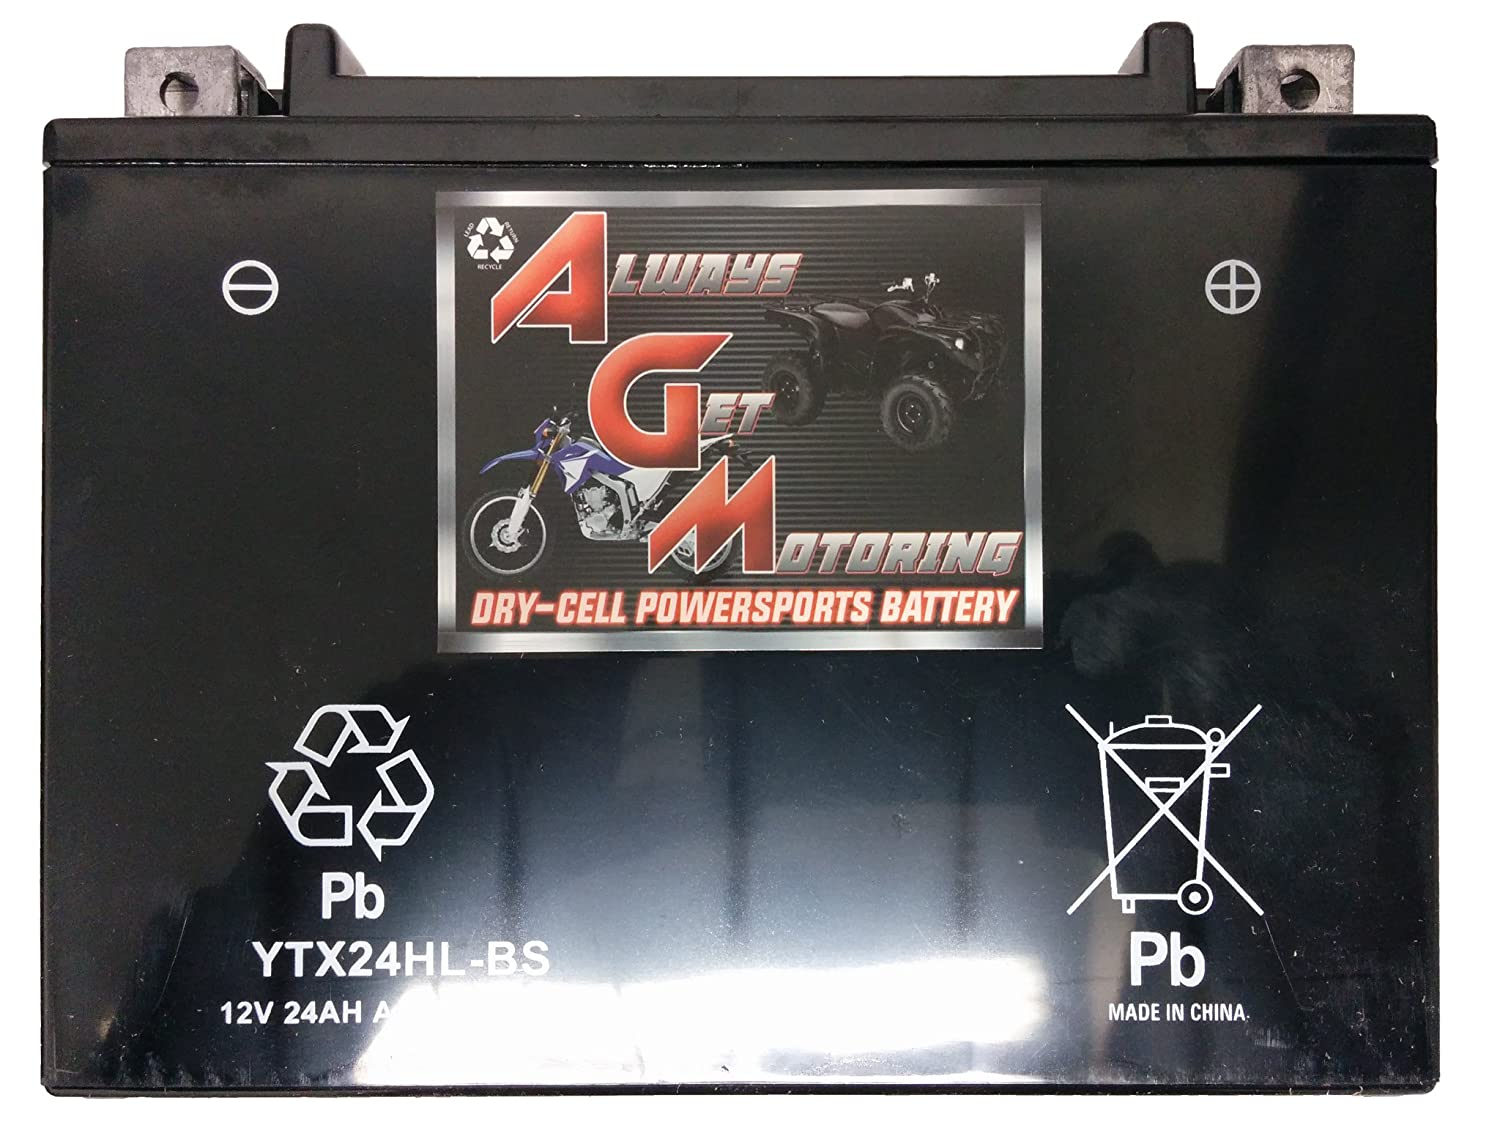 AGM Brand Or Similar Replacement For KMG YTX24HL-BS Battery For Yamaha 1100 XJ1100 Maxim 1982 Sealed Maintenance Free 12V Battery High Performance Maintenance Free Powersport Motorcycle ATV Scooter Snowmobile Watercraft KMG -By Saskbattery SecurityBattery